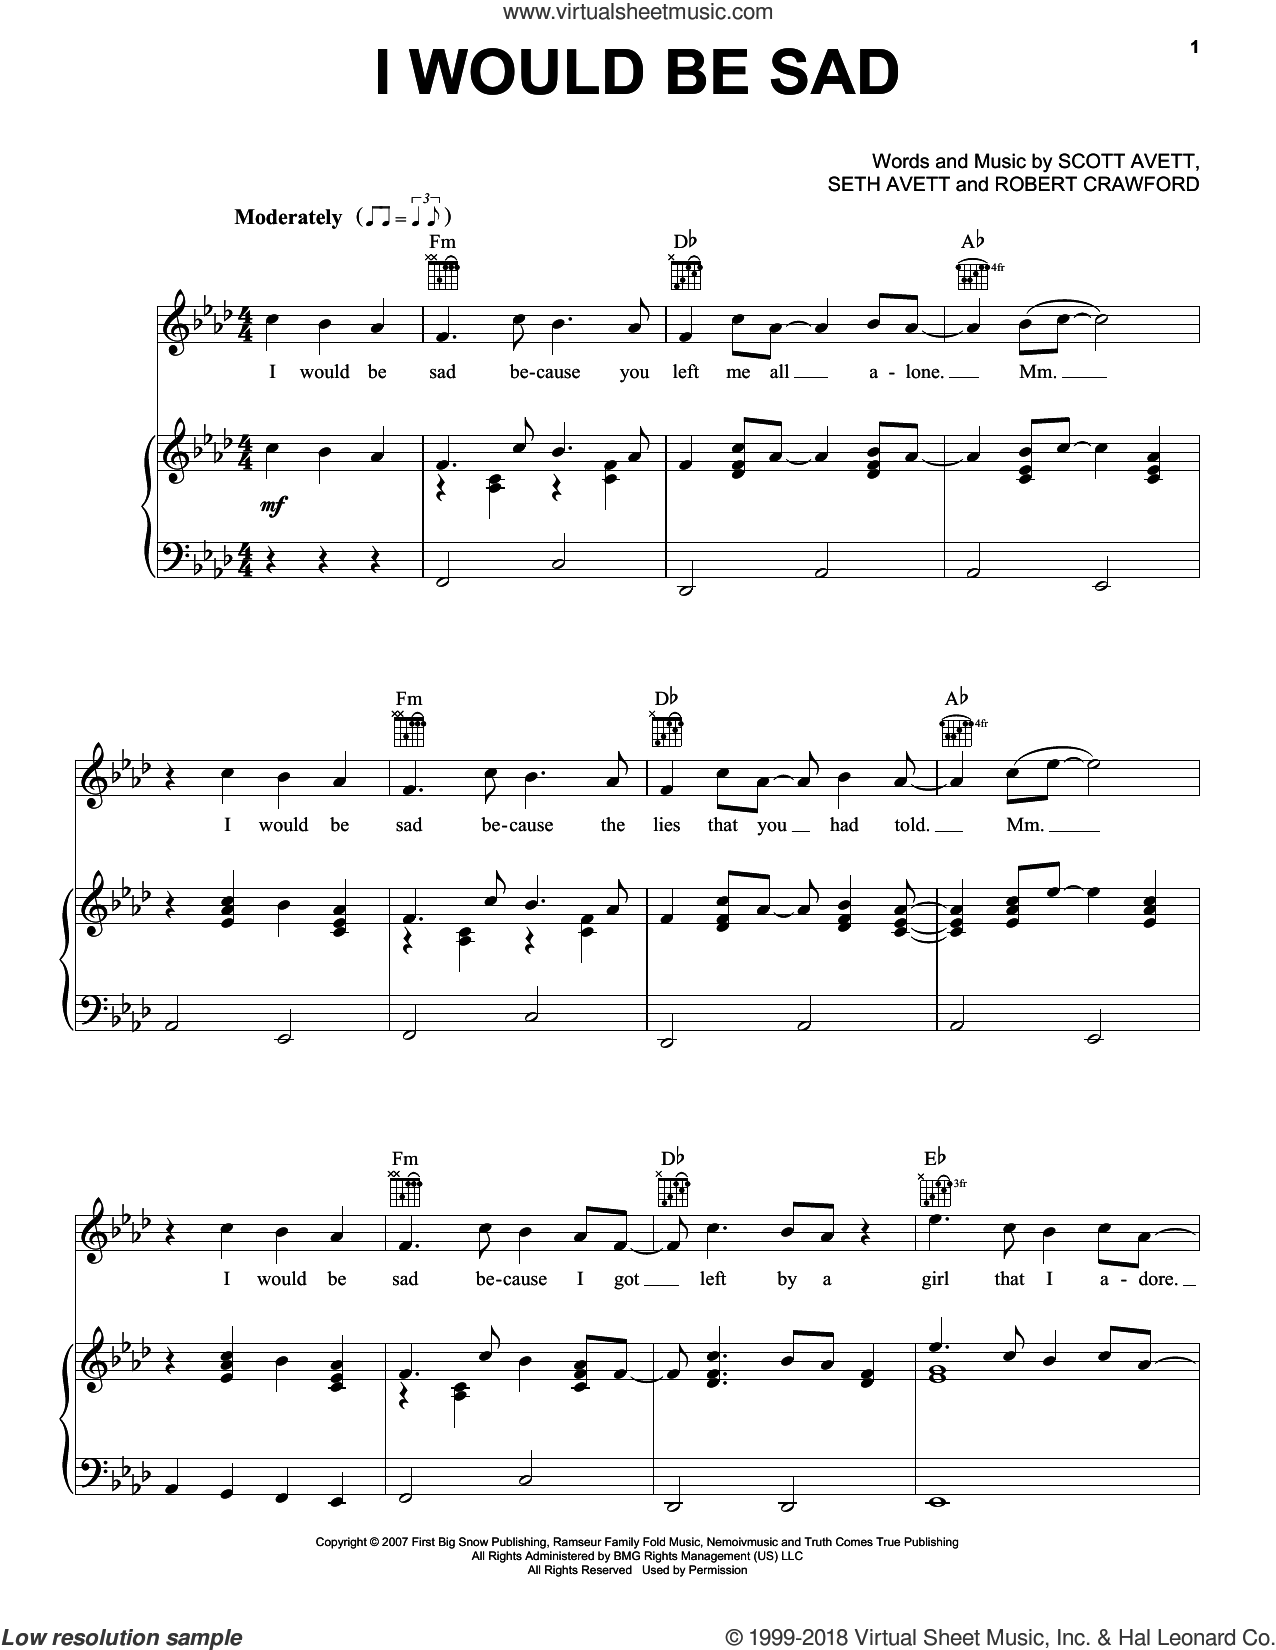 I Would Be Sad sheet music for voice, piano or guitar by Seth Avett. Score Image Preview.